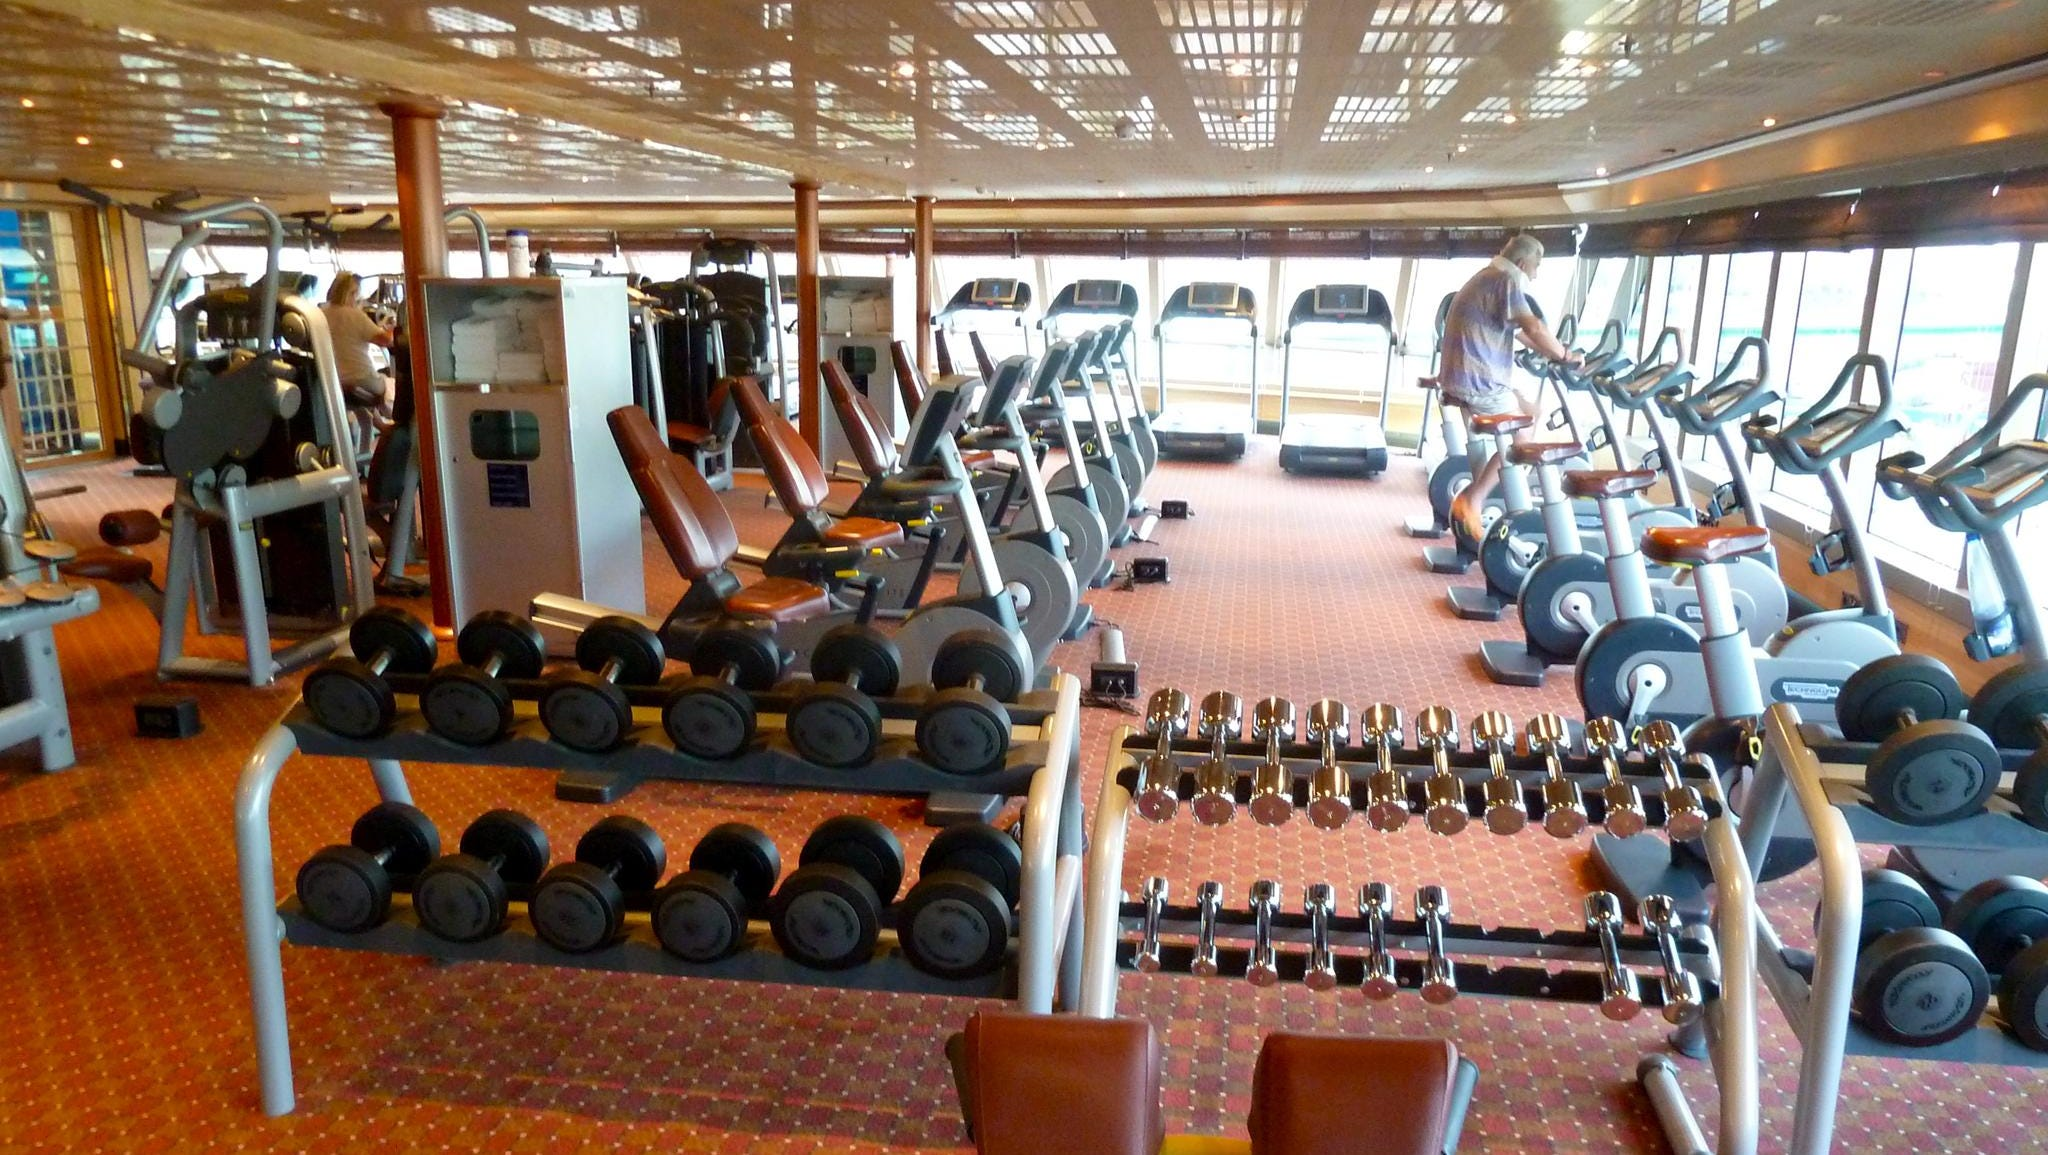 The excellent gymnasium has plenty of cardio and weight machines as well as free weights.